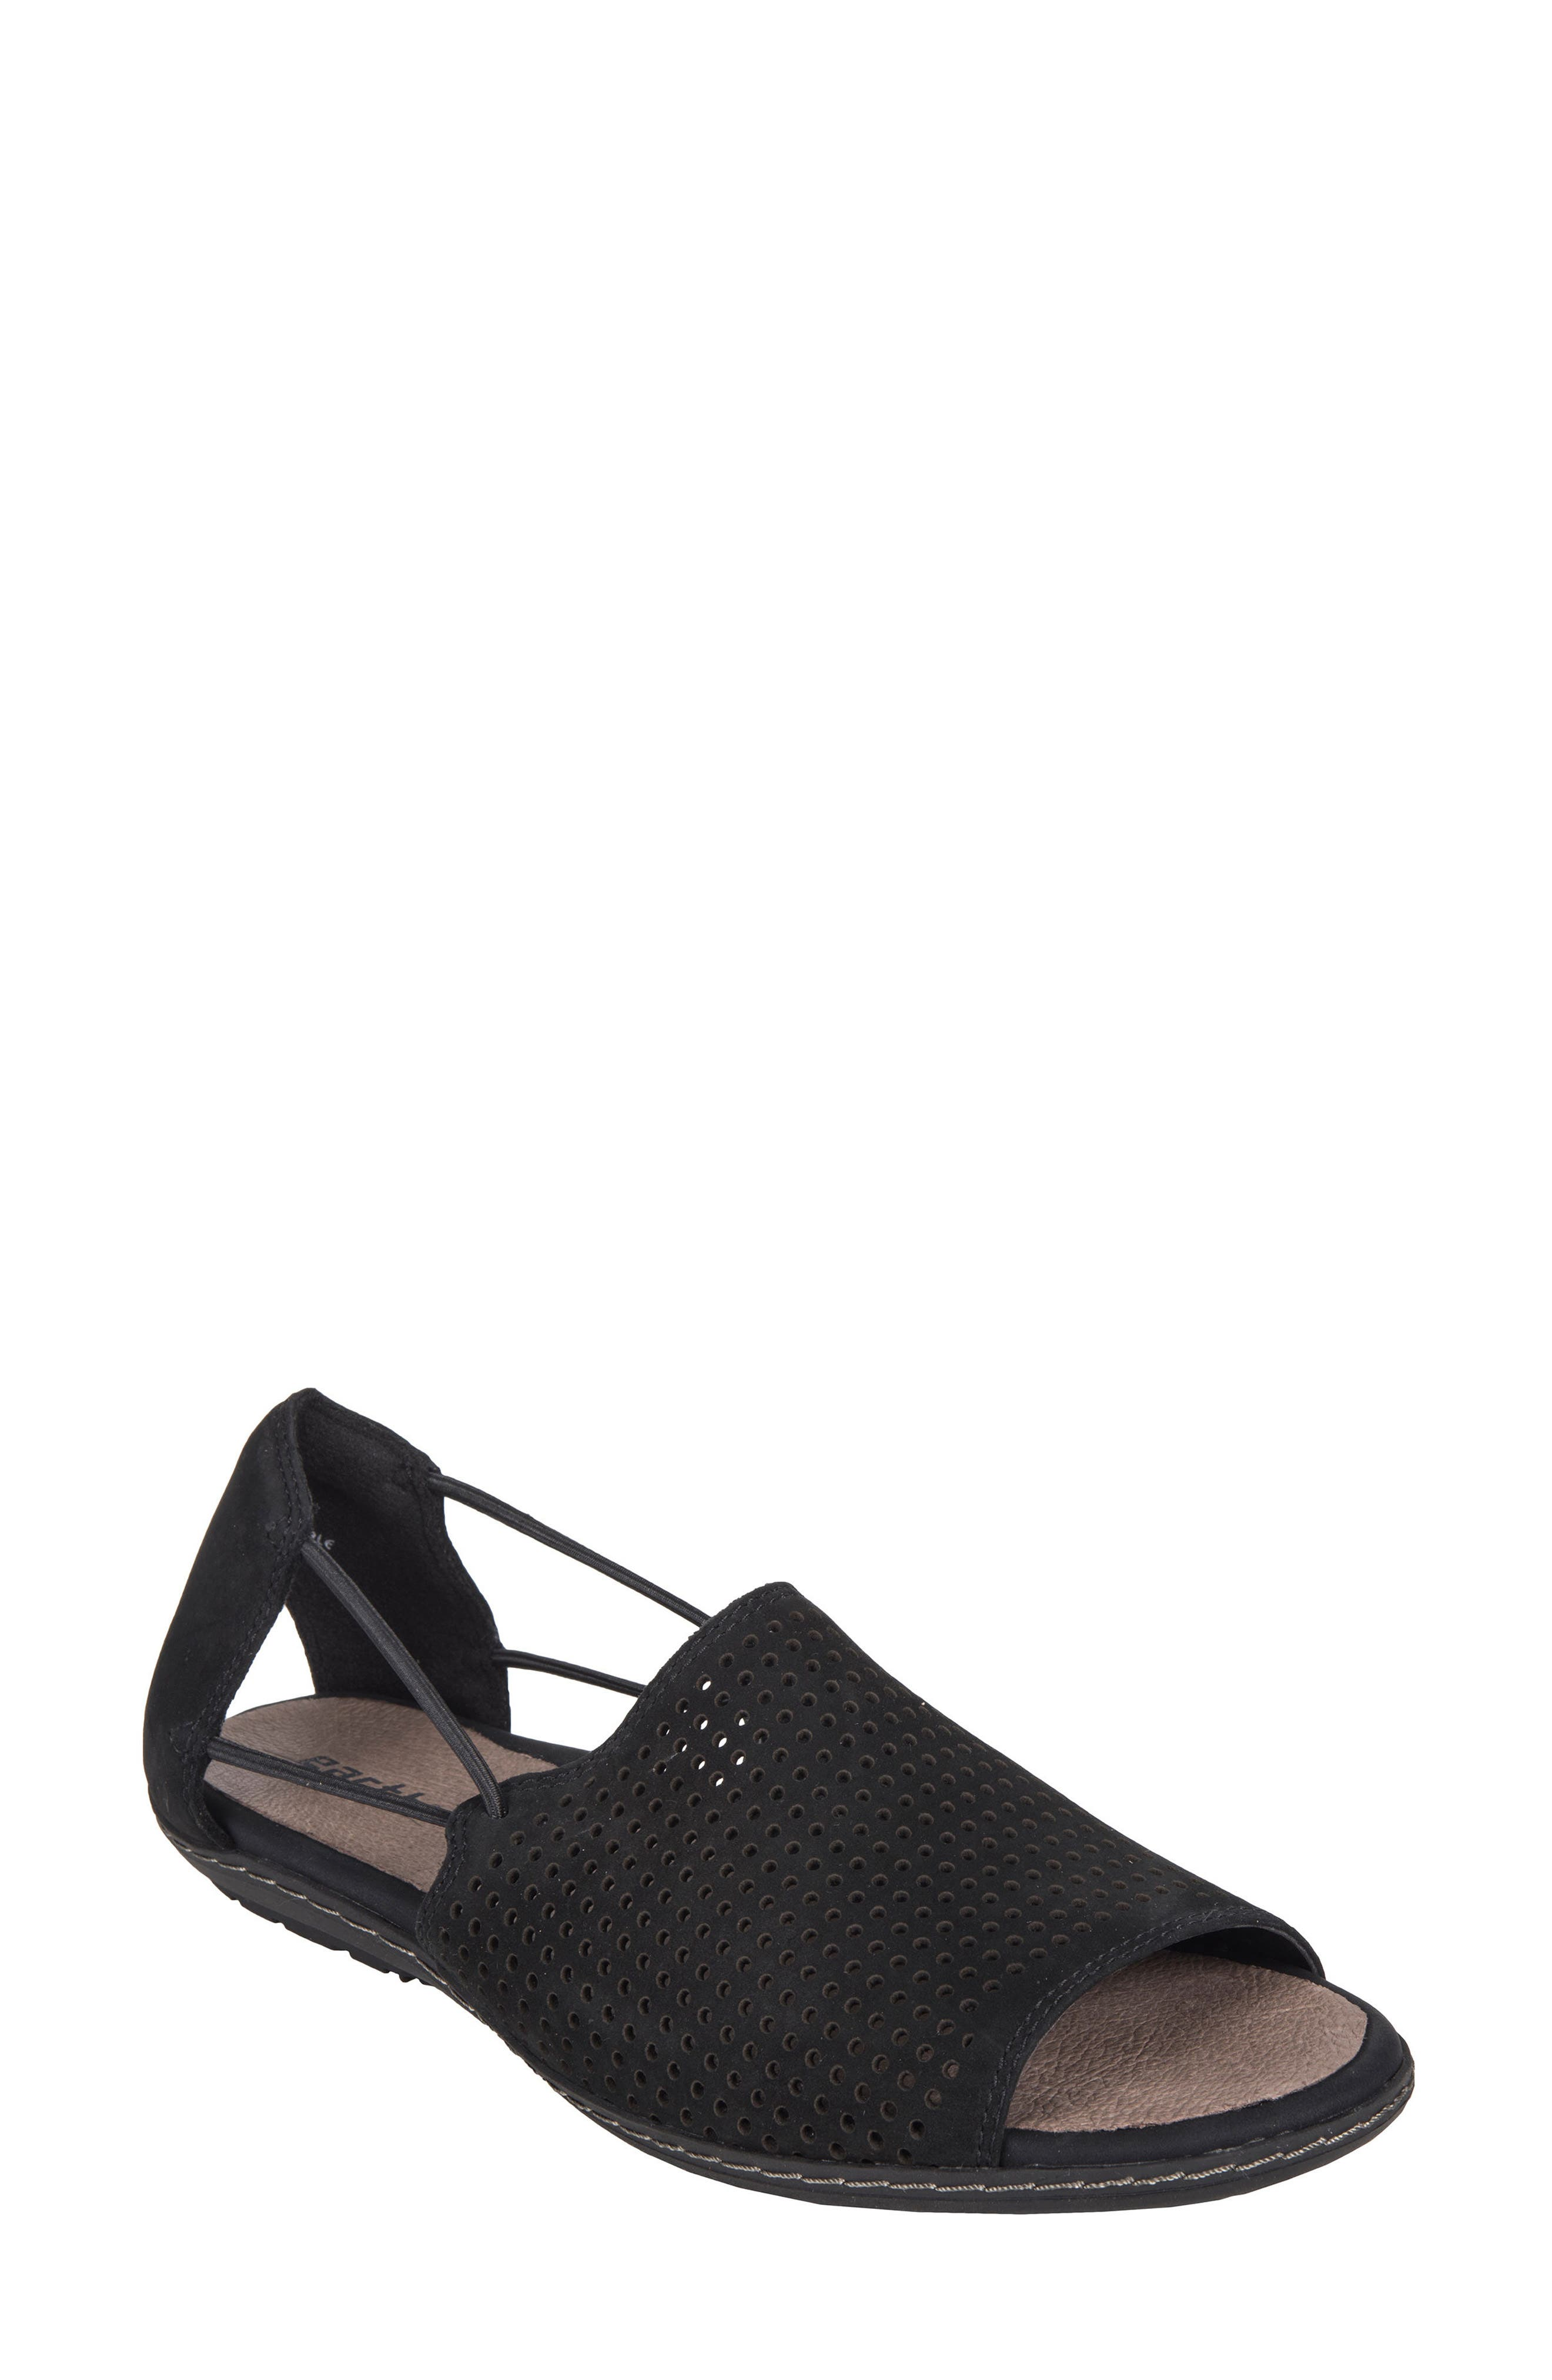 Shelly Sandal,                         Main,                         color, 002